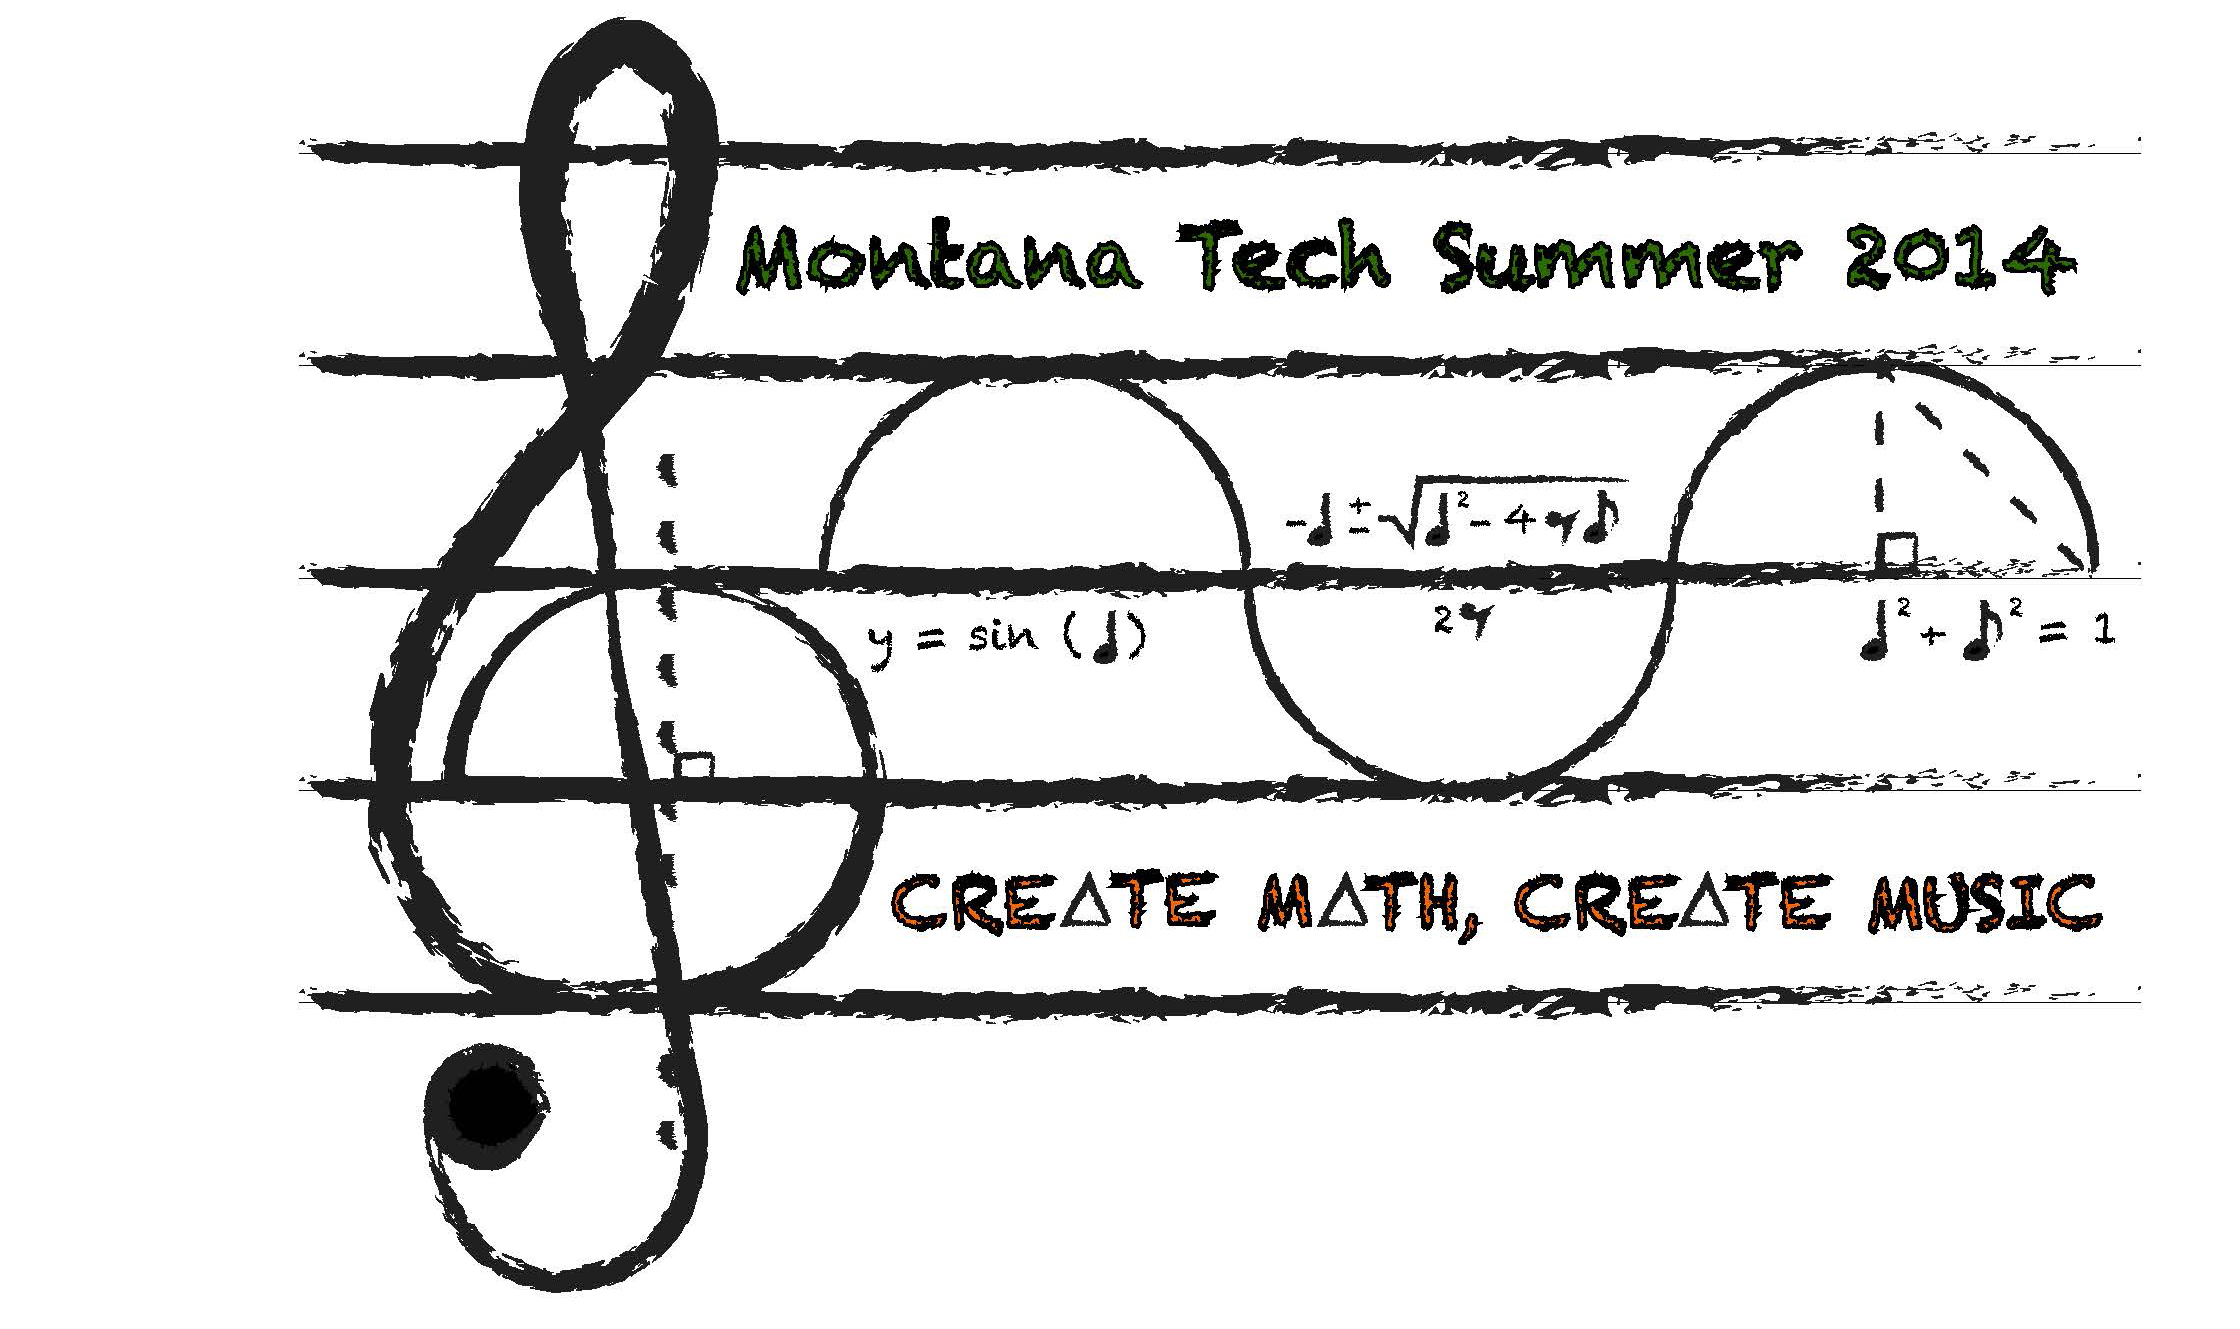 Create Math 2014: Mathematics and Music Summer Experience